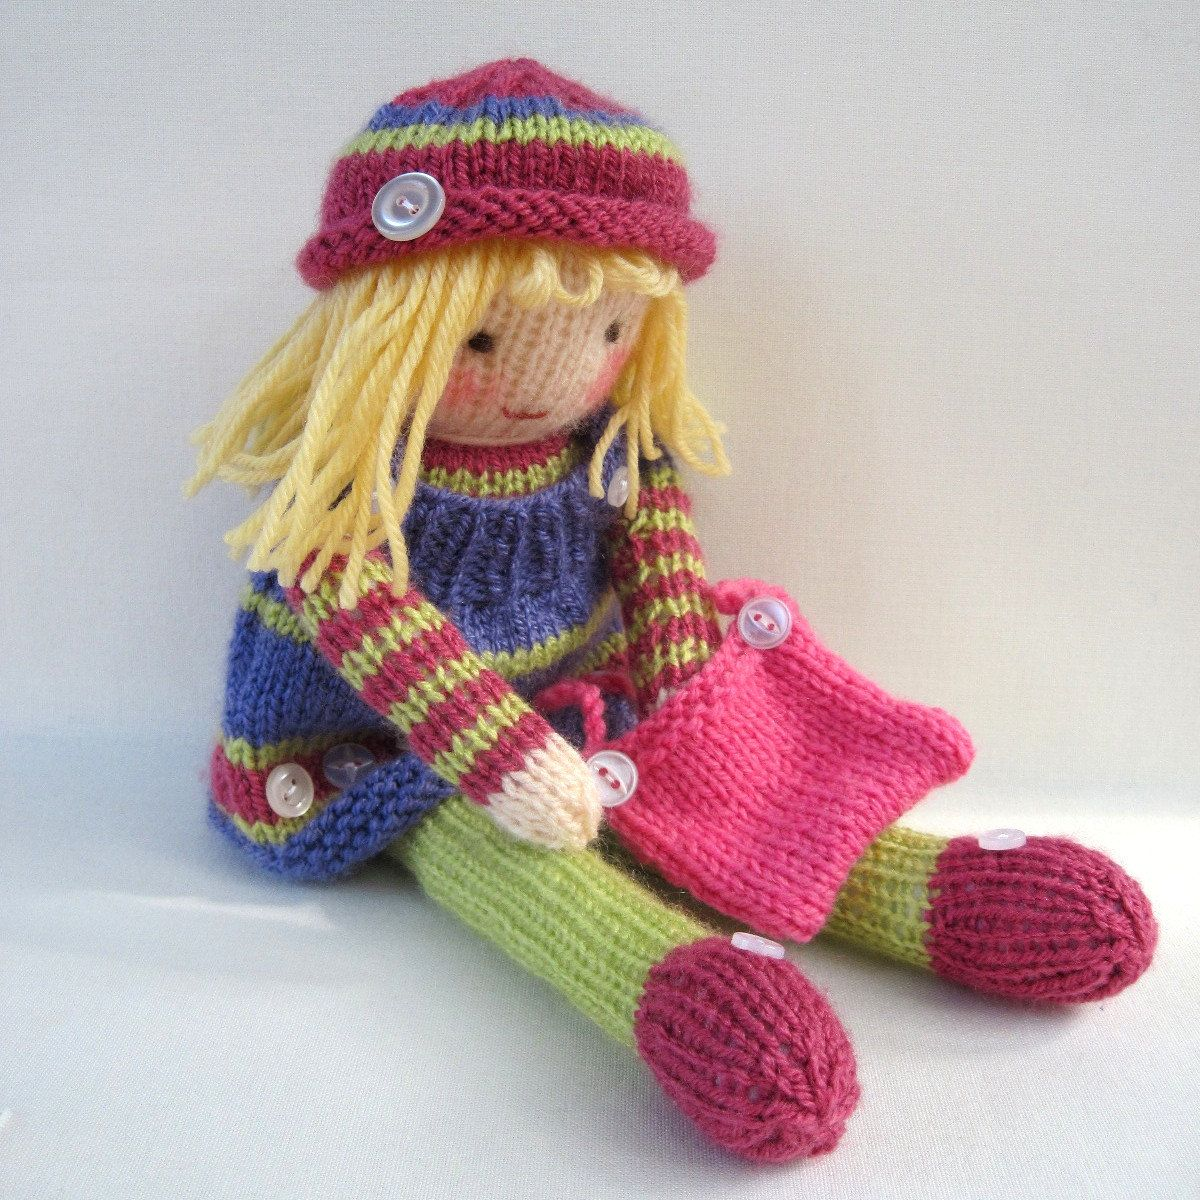 Betsy button toy doll knitting pattern pdf instant download betsy button toy doll knitting pattern pdf instant download bankloansurffo Image collections